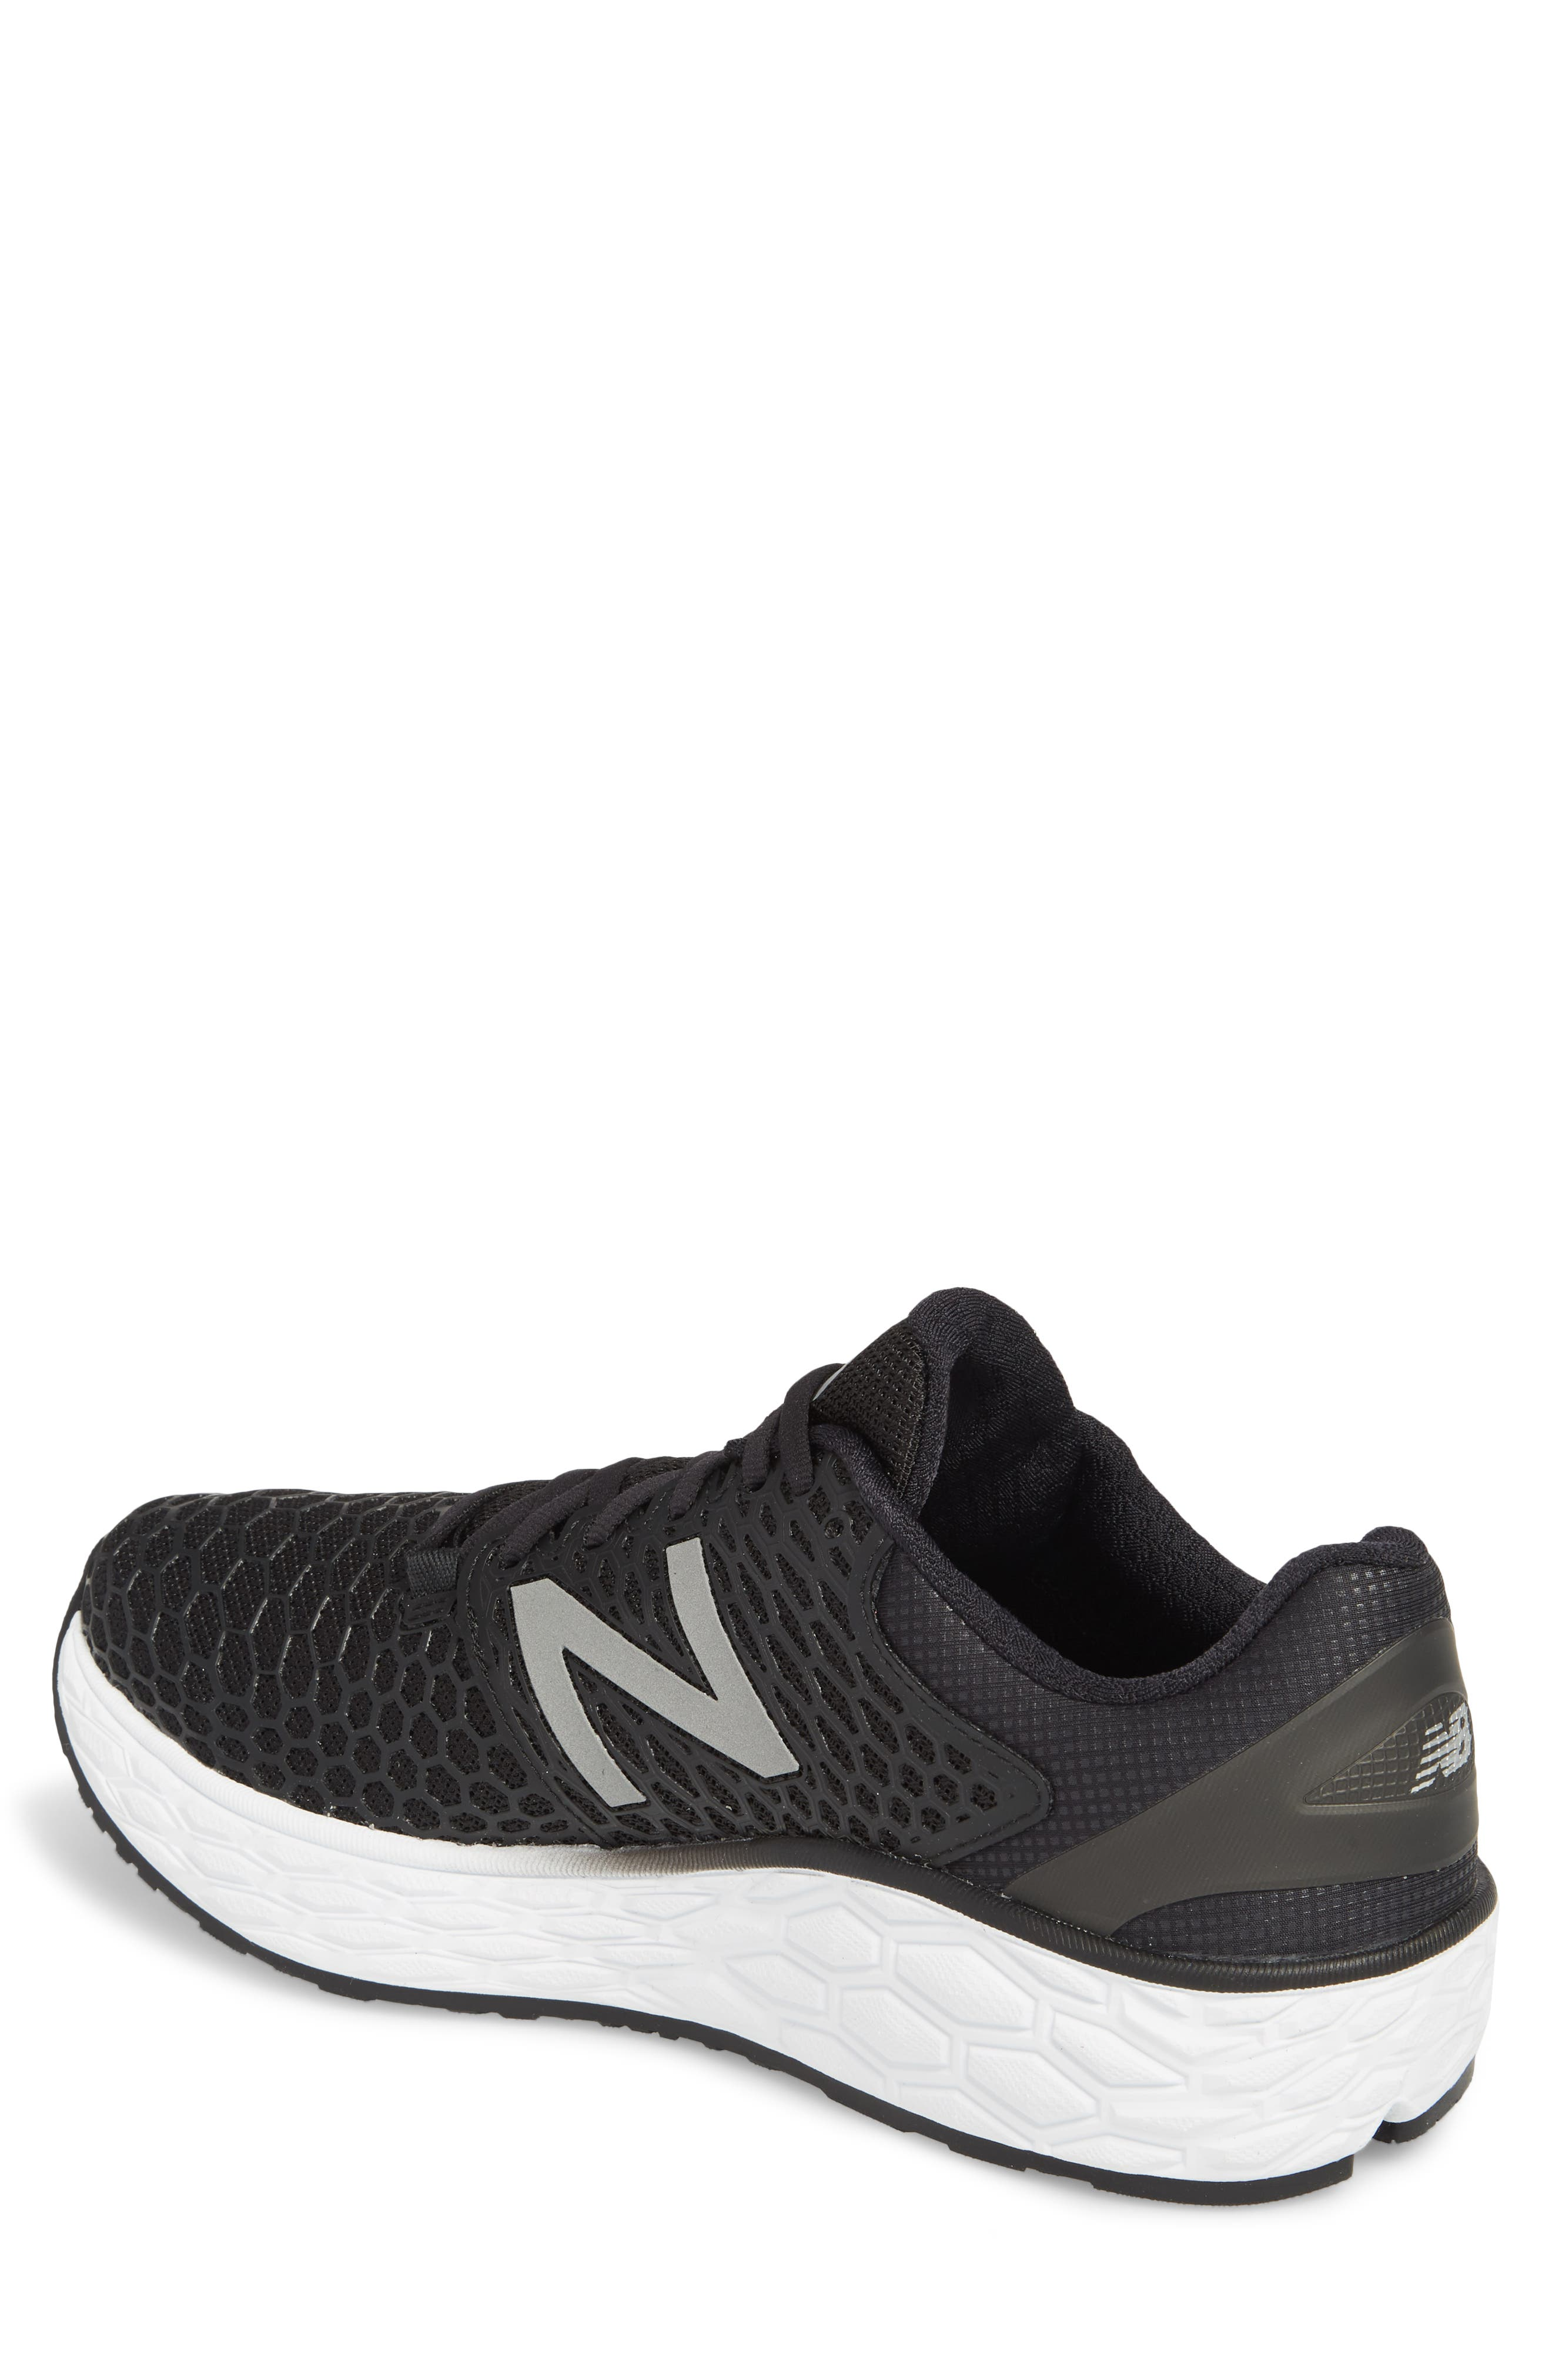 NEW BALANCE, Fresh Foam Vongo v3 Running Shoe, Alternate thumbnail 2, color, BLACK